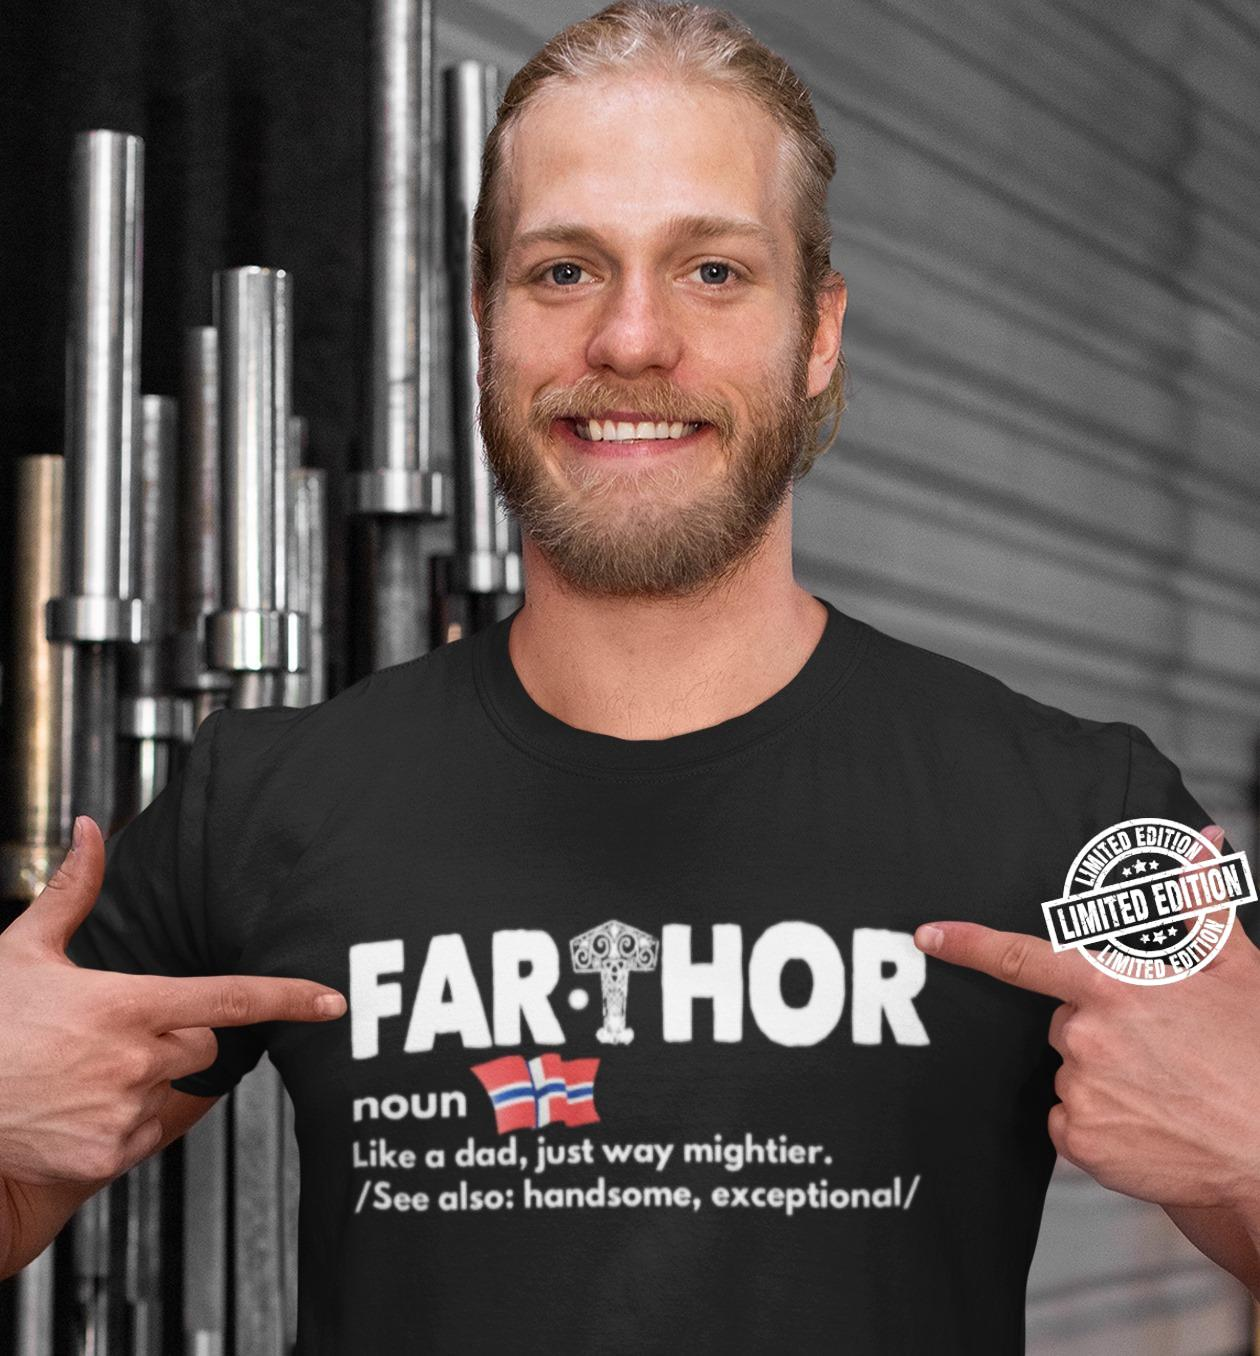 Fathor noun like a dad just way mightier see also handsome exceptional shirt